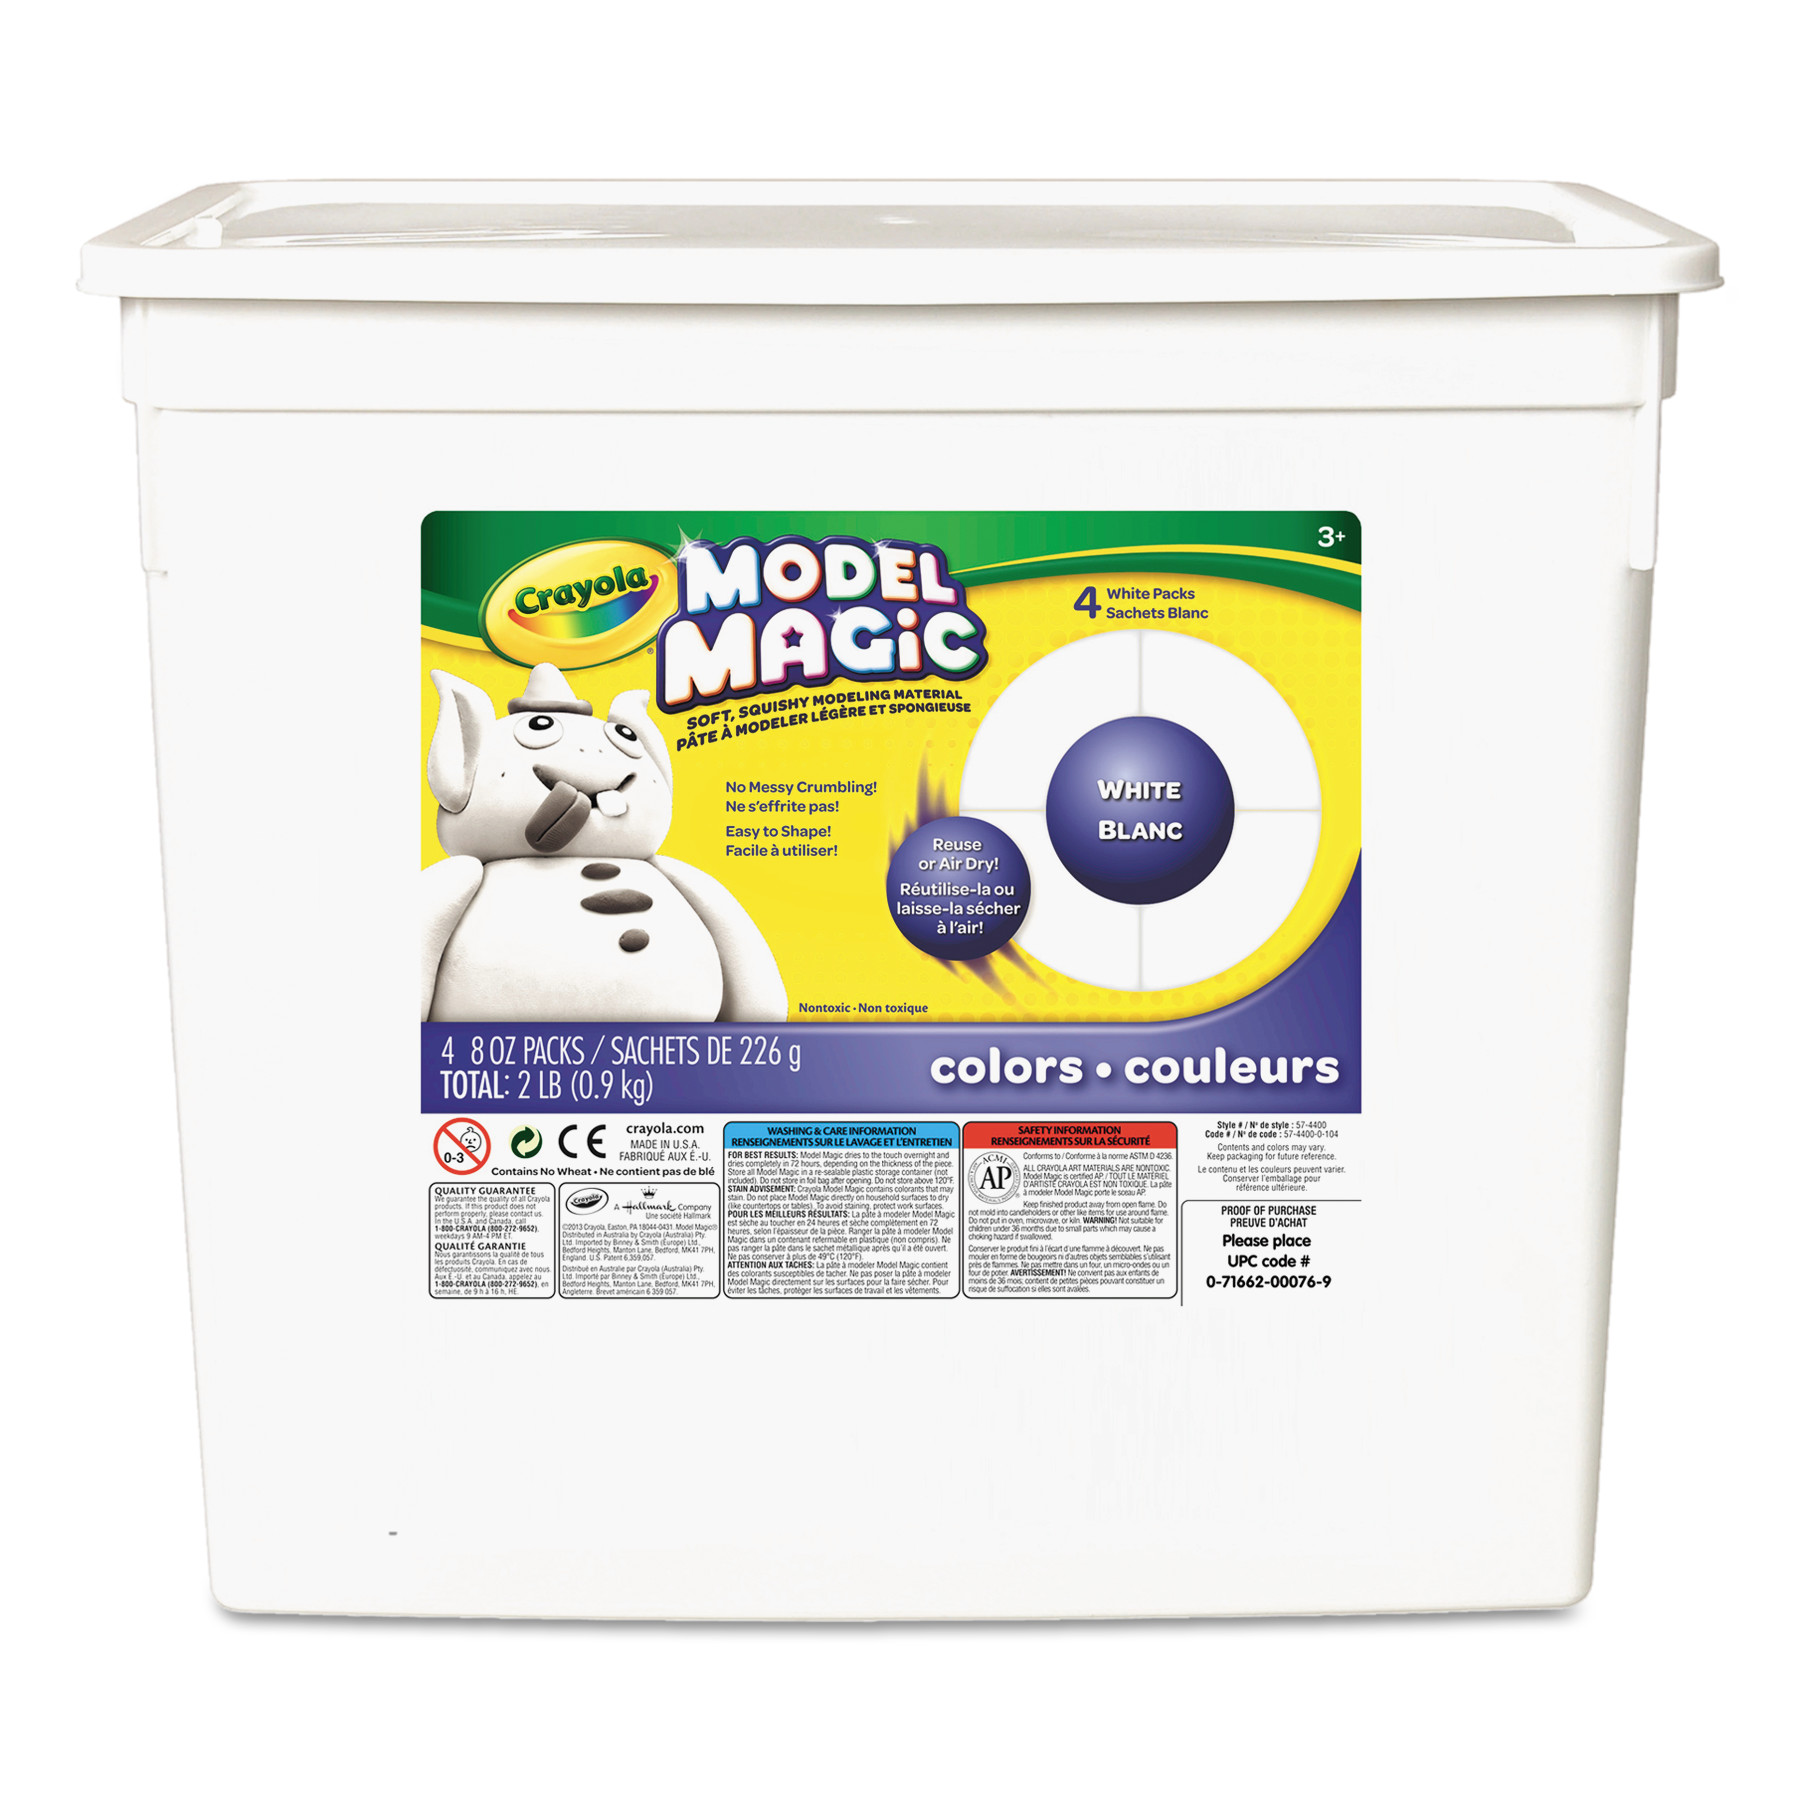 Crayola Model Magic White Clay Alternative, 2 lbs.